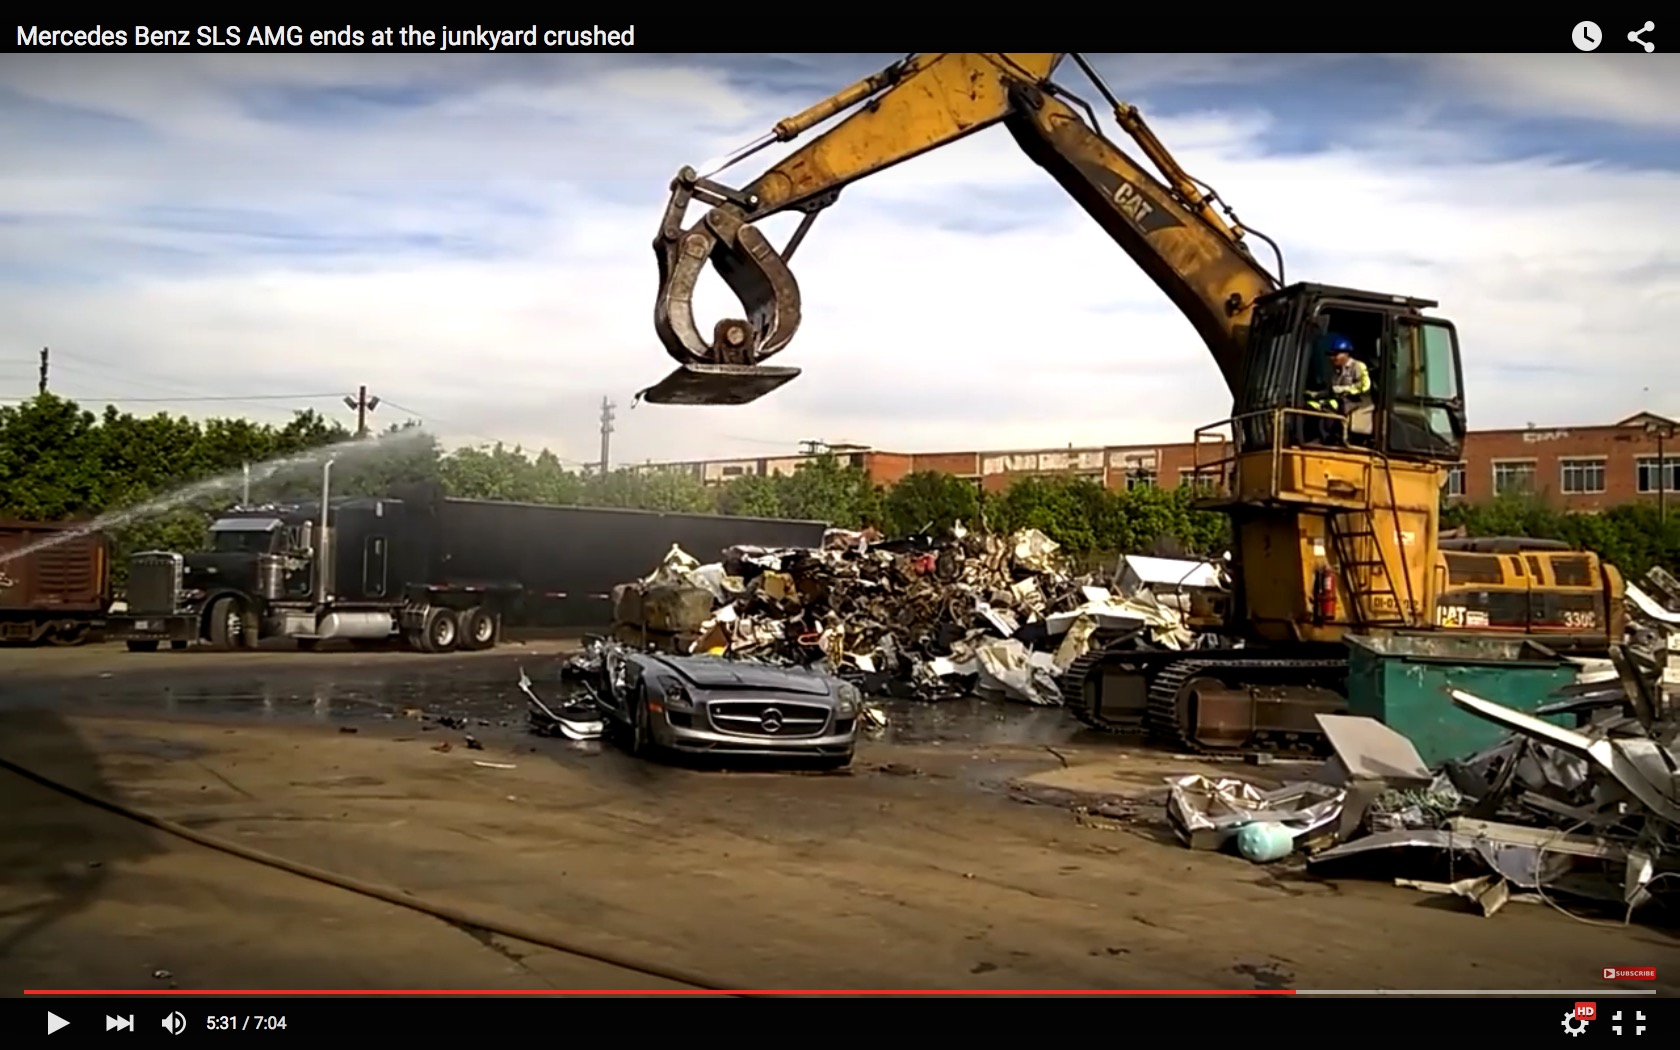 you hsx hemmings magazine mercedes image of junkyard jewel photo benz courtesy terry d ne sel shea